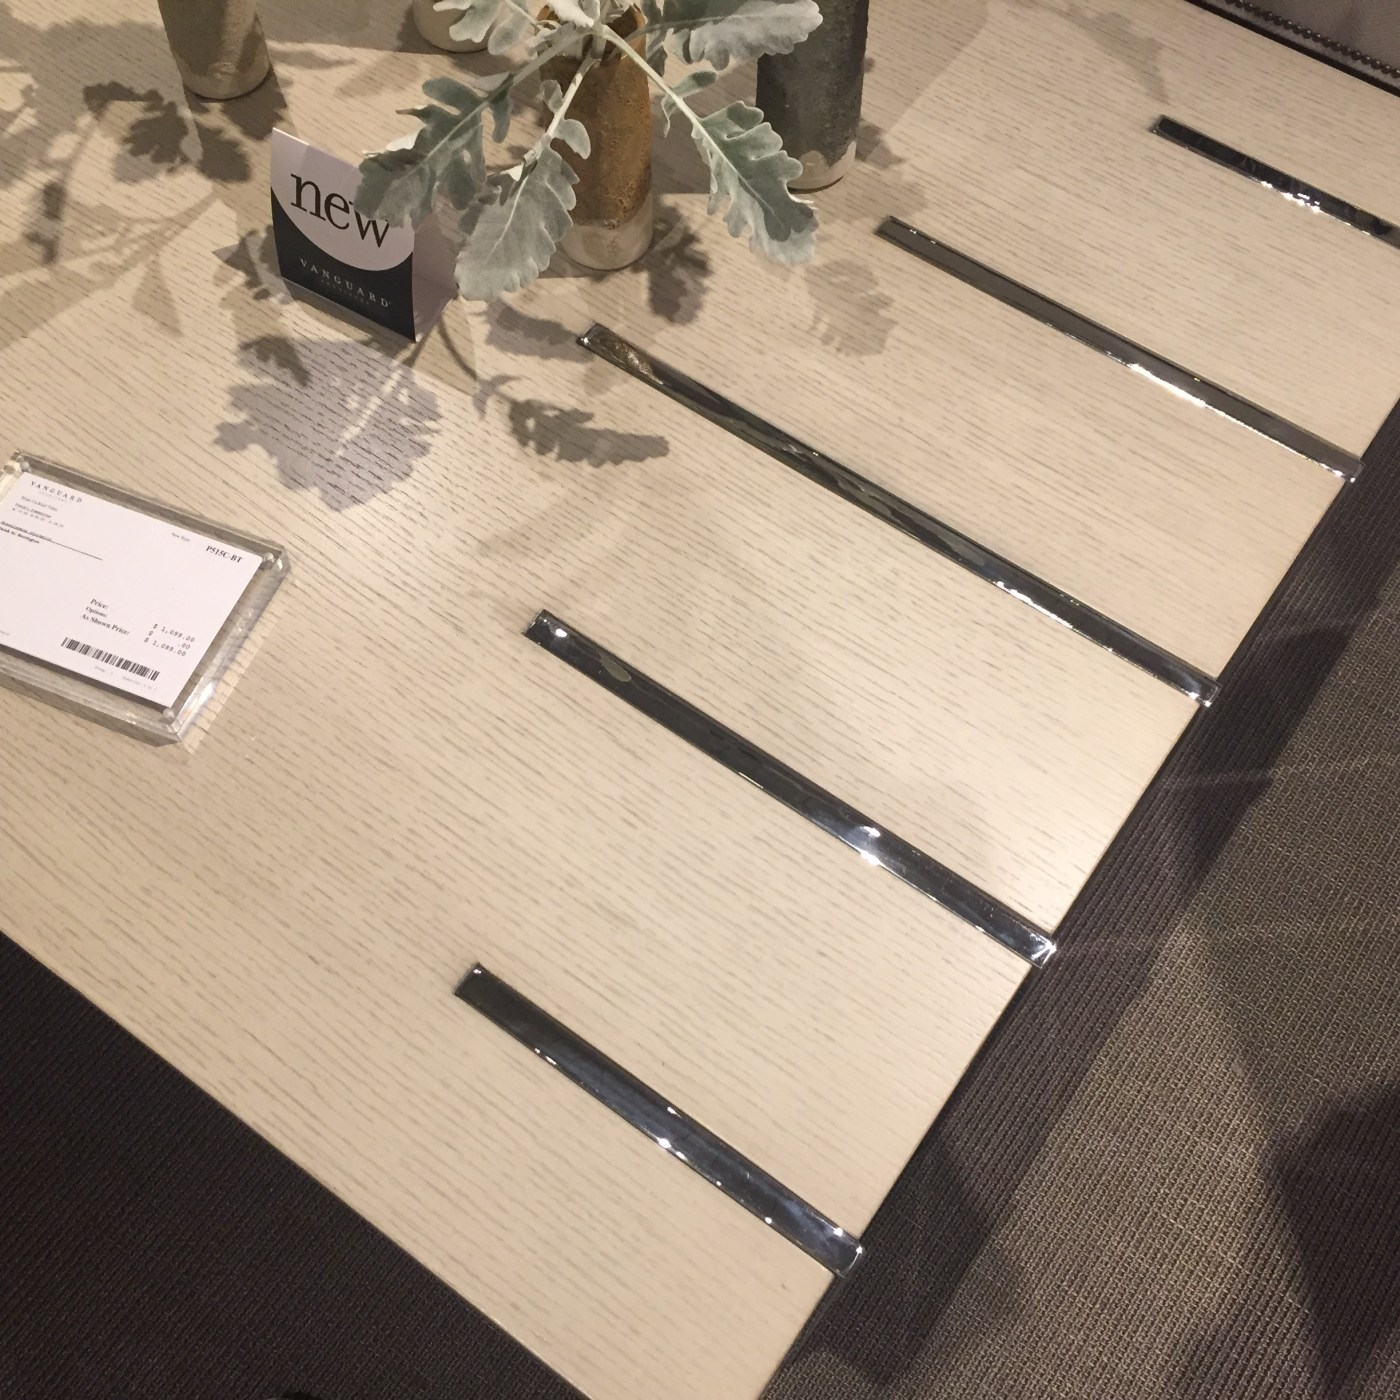 High Point High 5: My Trend Flash Report   Kelly Rogers Interiors   Interiors for Families